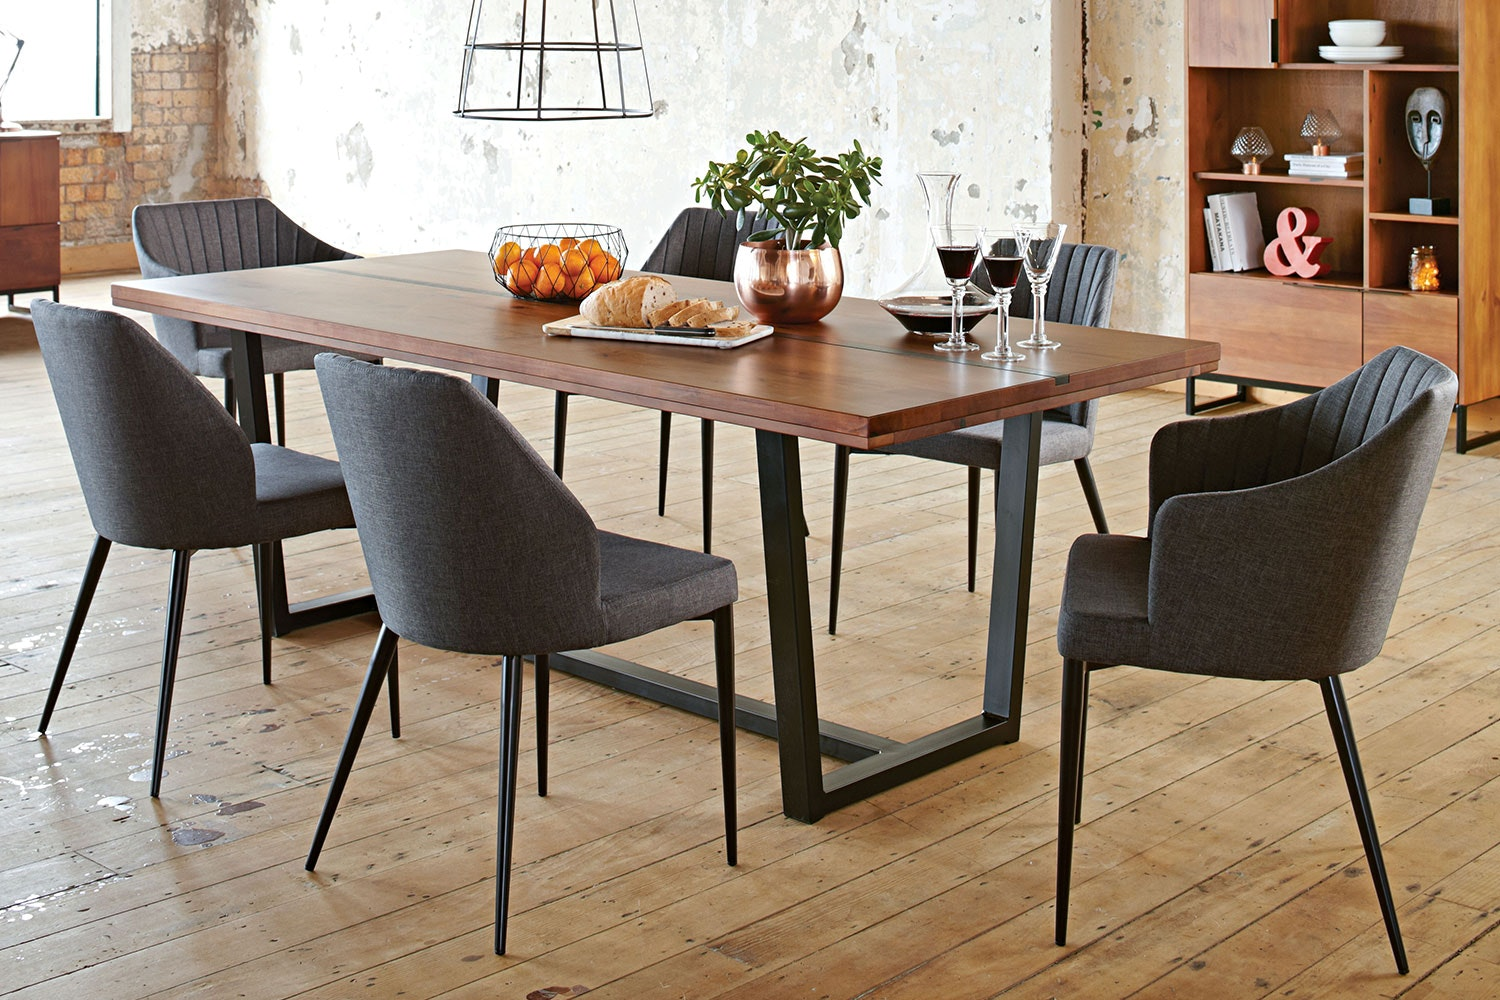 Matai Bay Dining Table By Sorensen Furniture Part 29